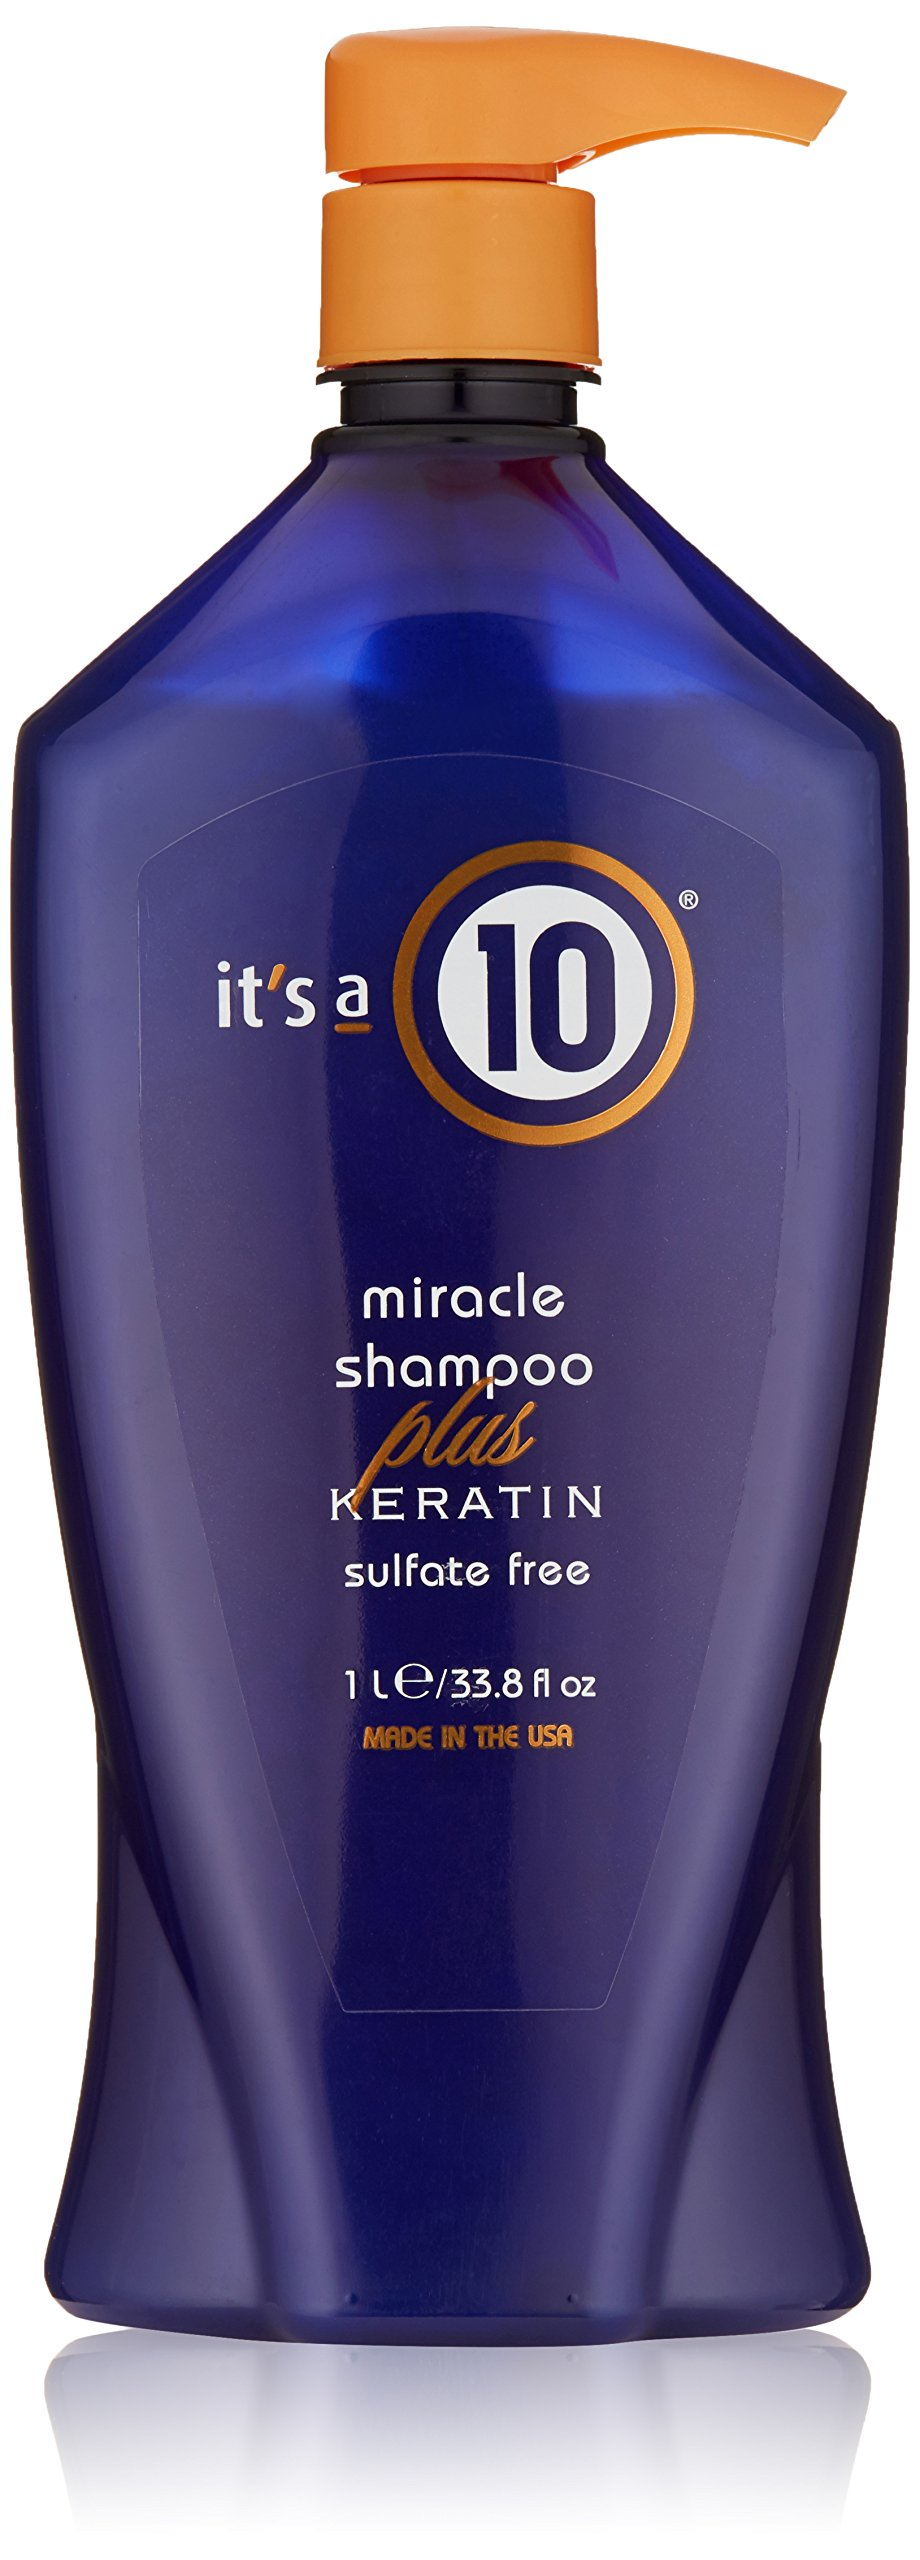 It's A 10 Miracle Shampoo Plus Keratin 33.8 Ounce by It's a 10 Haircare